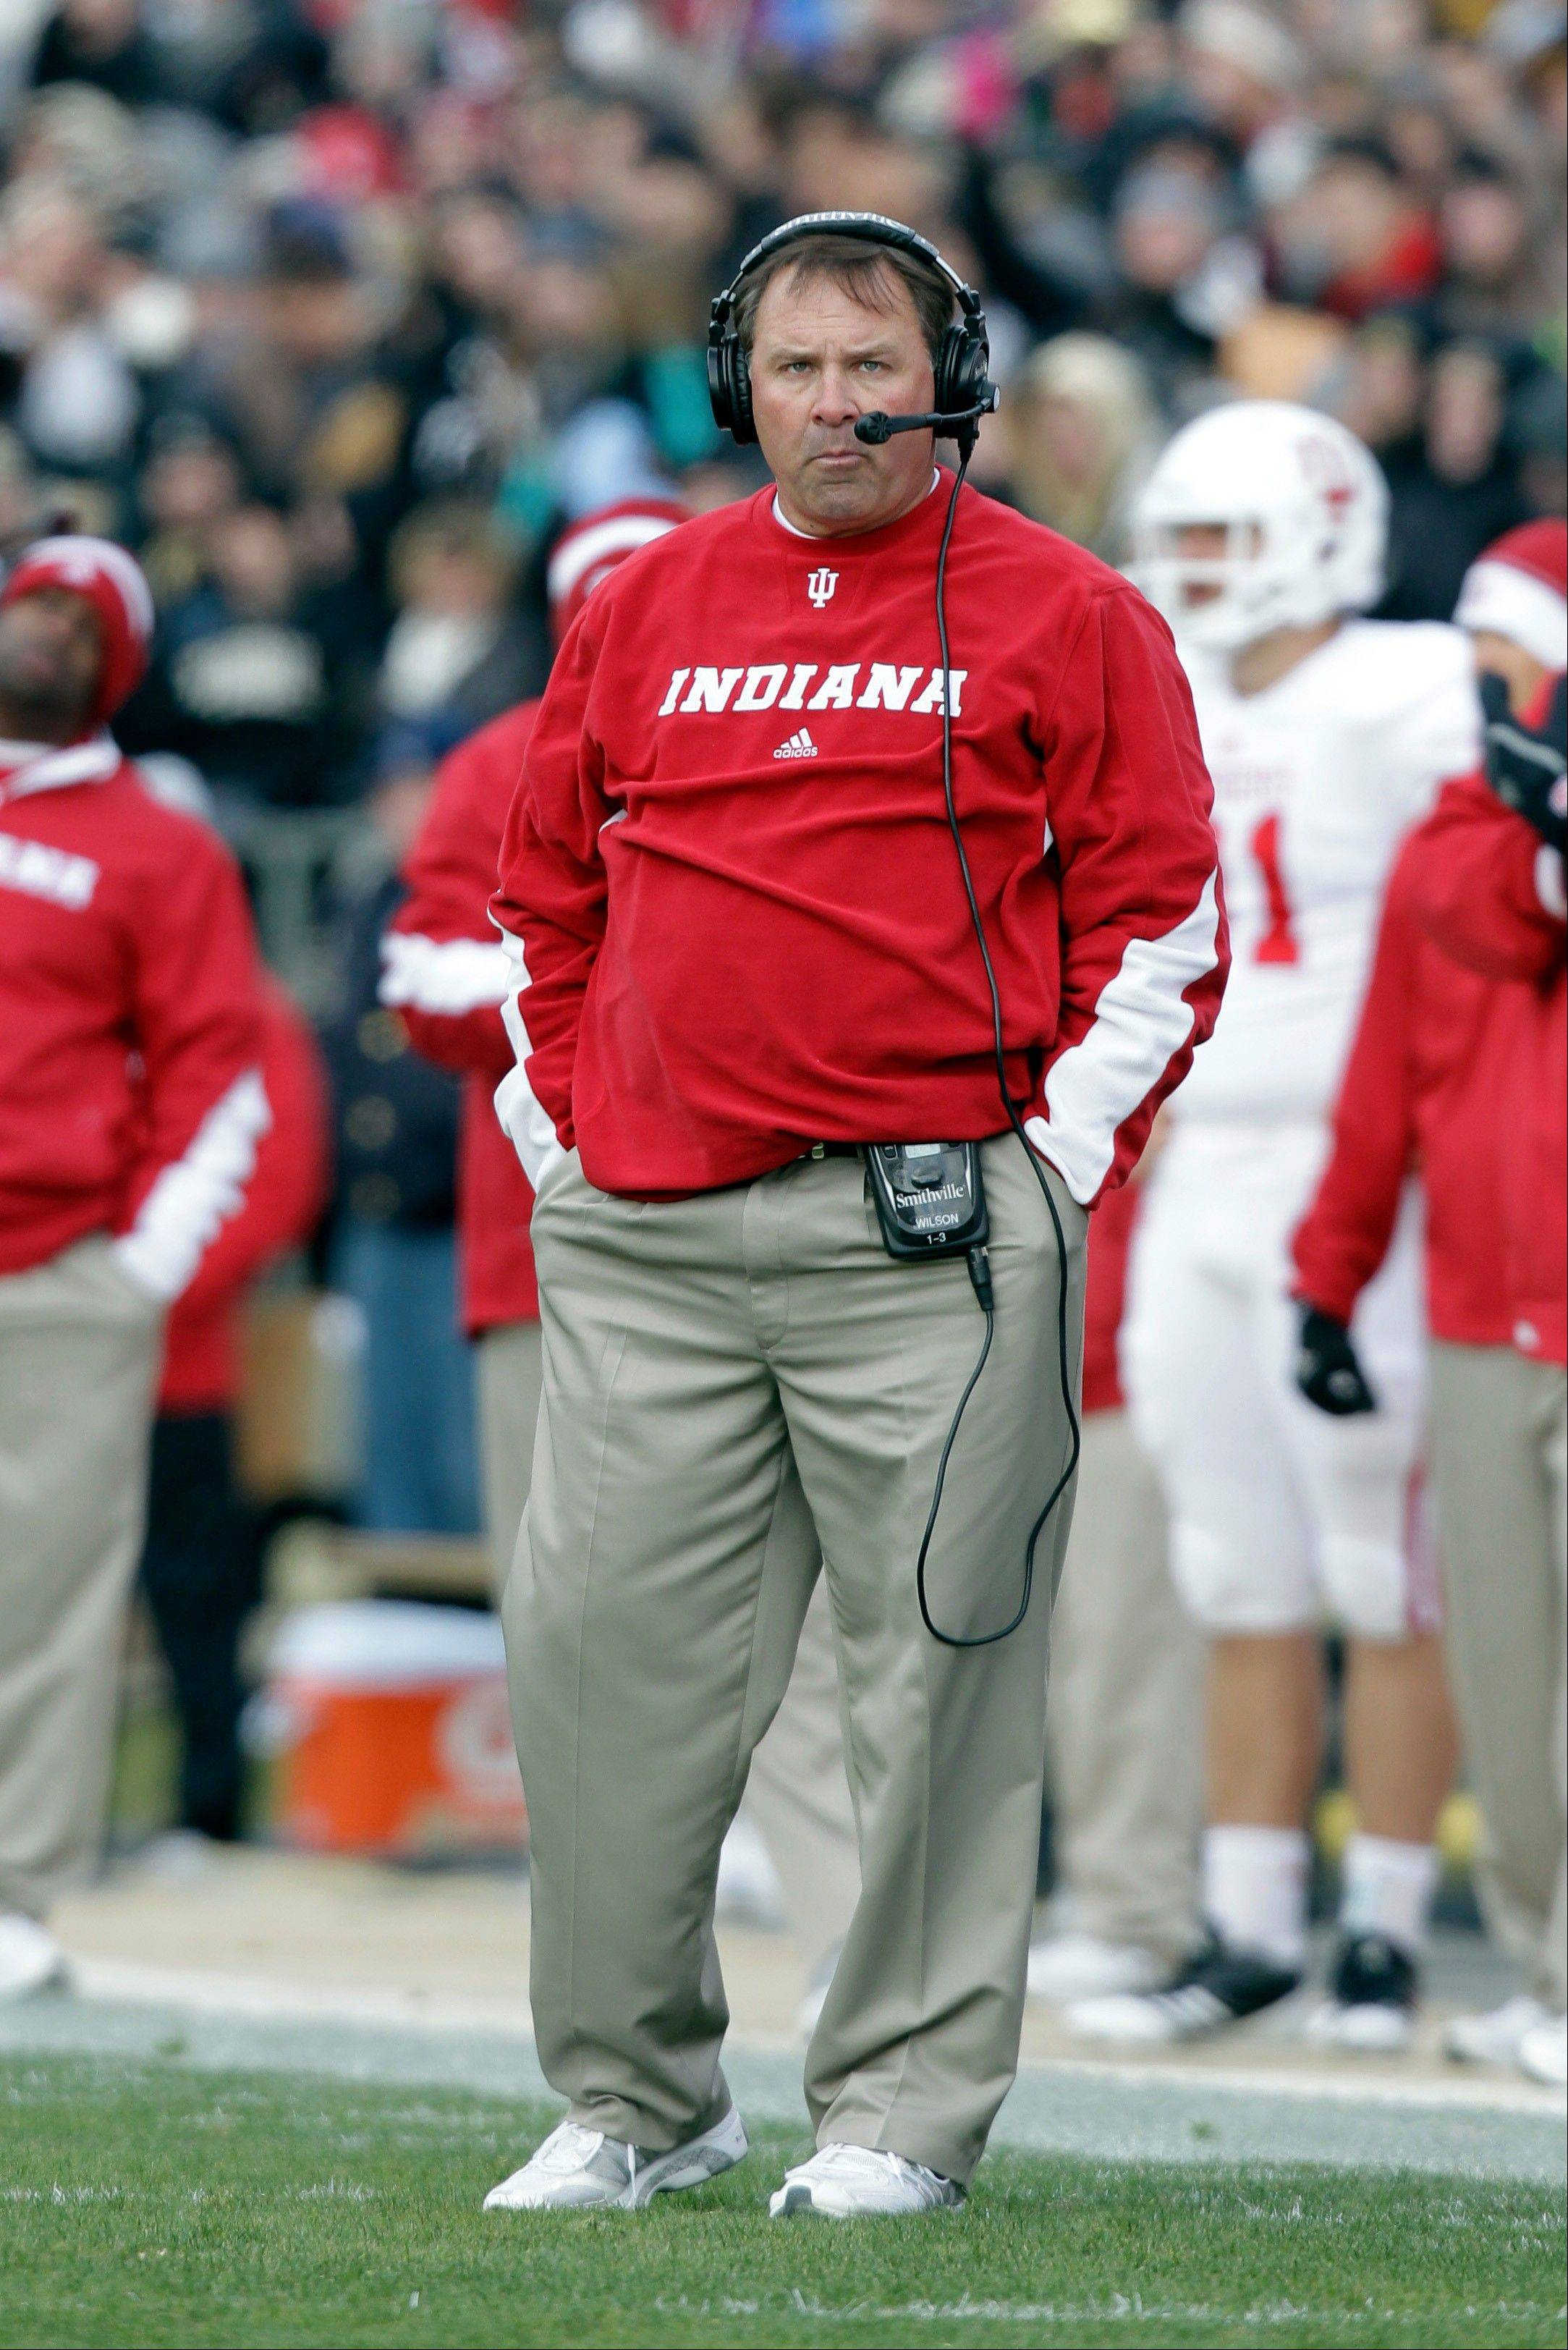 Indiana head coach Kevin Wilson called last week�s rout of Indiana State �a good start.� The Hoosiers play Navy on Saturday.